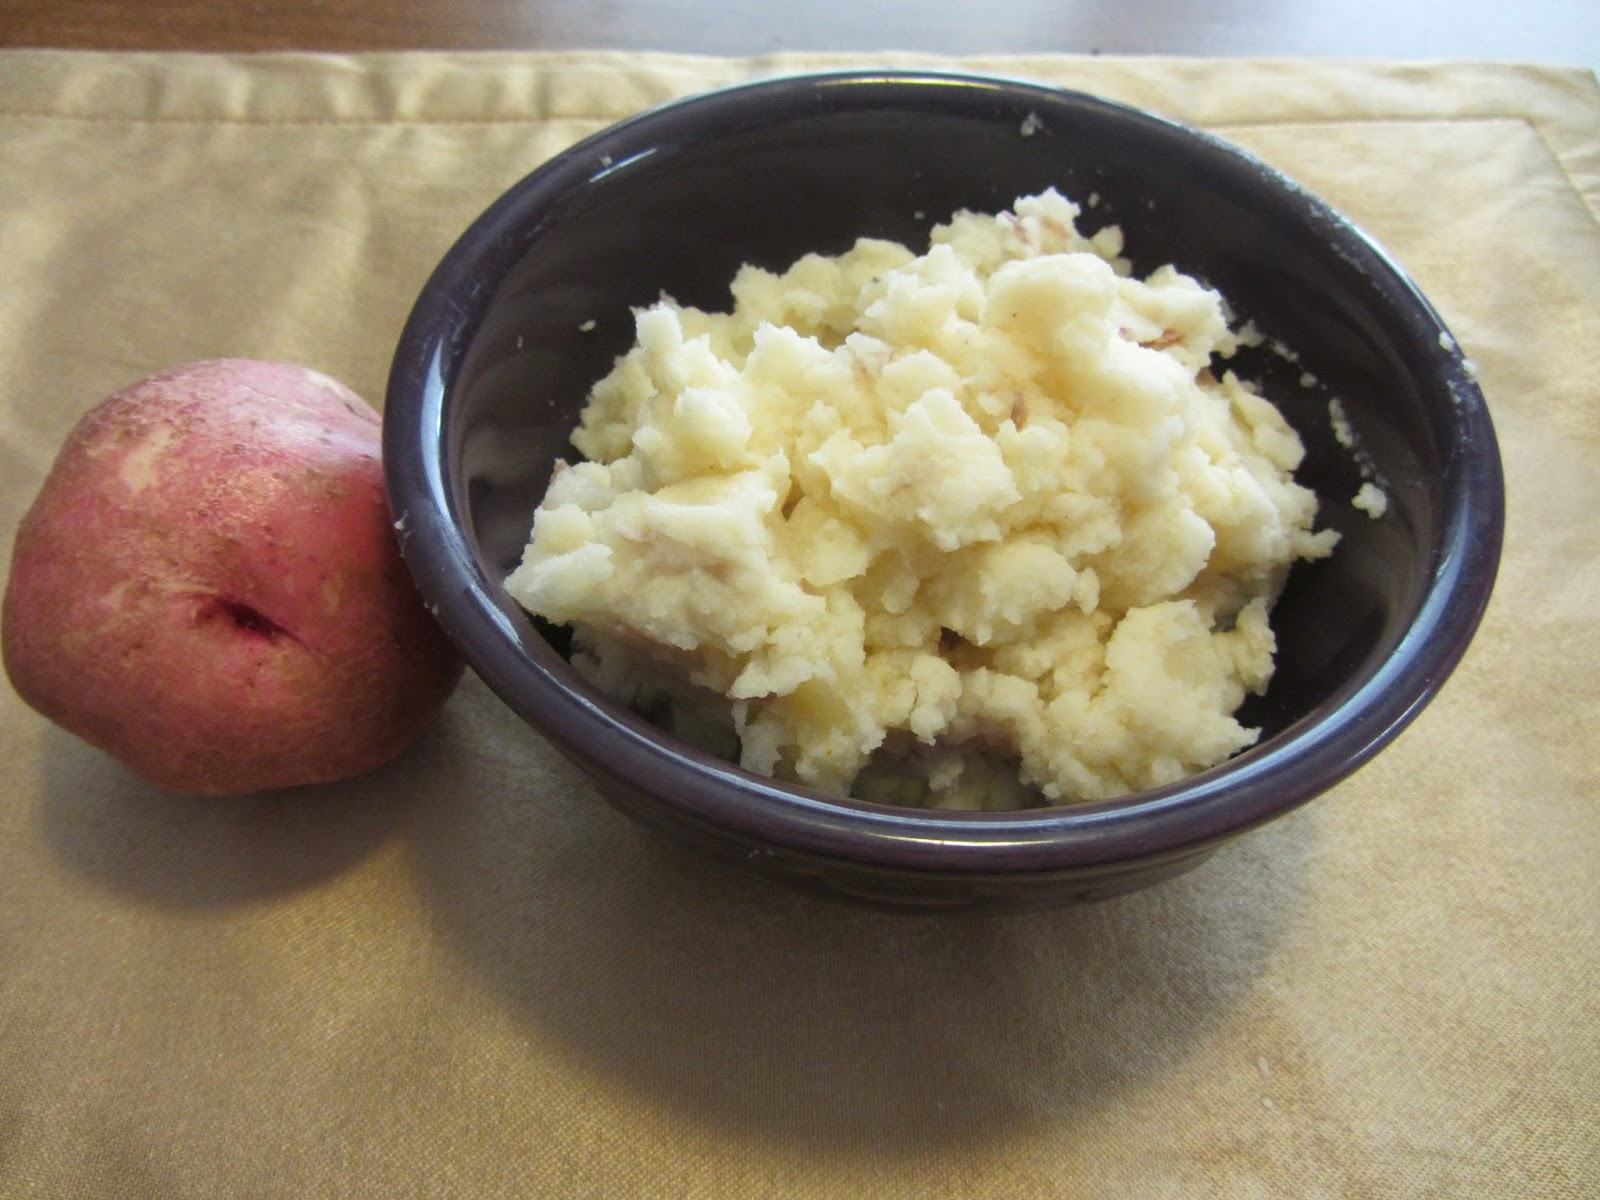 Mashed Potatoes and Crafts: Don't Peel the Potatoes!